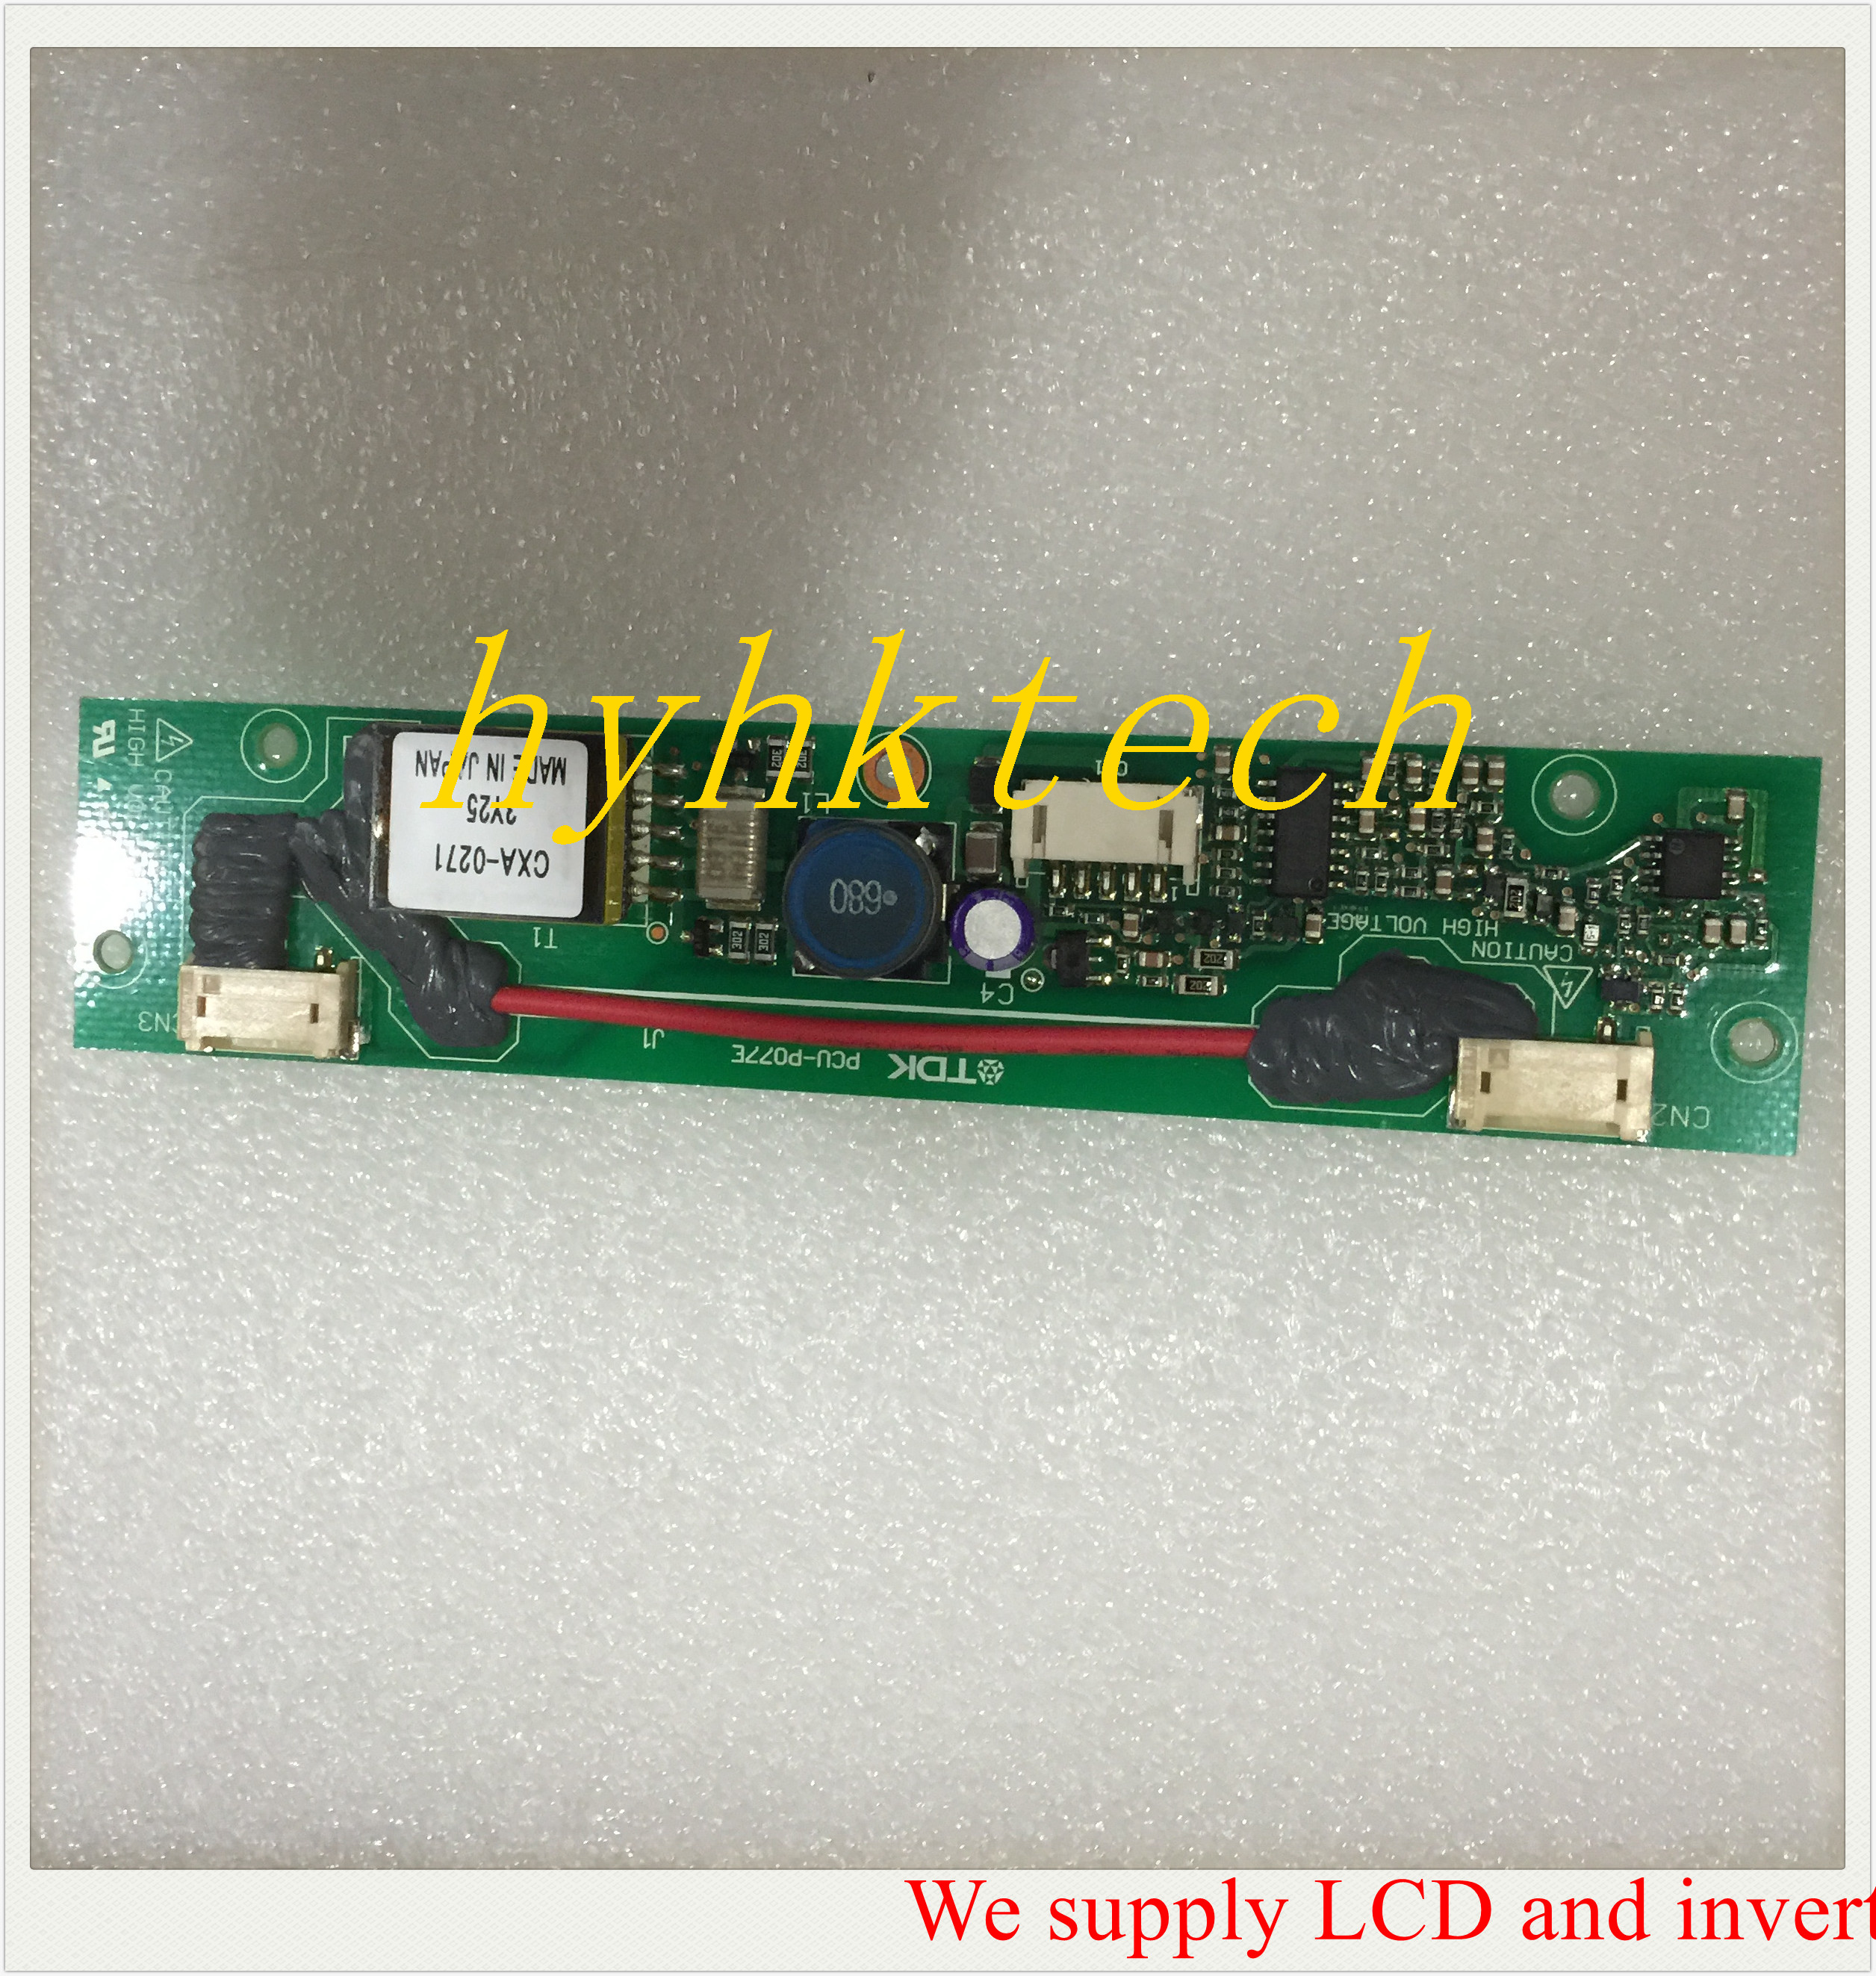 Supply CXA 0271 10 4 inch Pro face machine LCD LQ104V1DG21 LM104VC1T51 Original TDK Inverter or